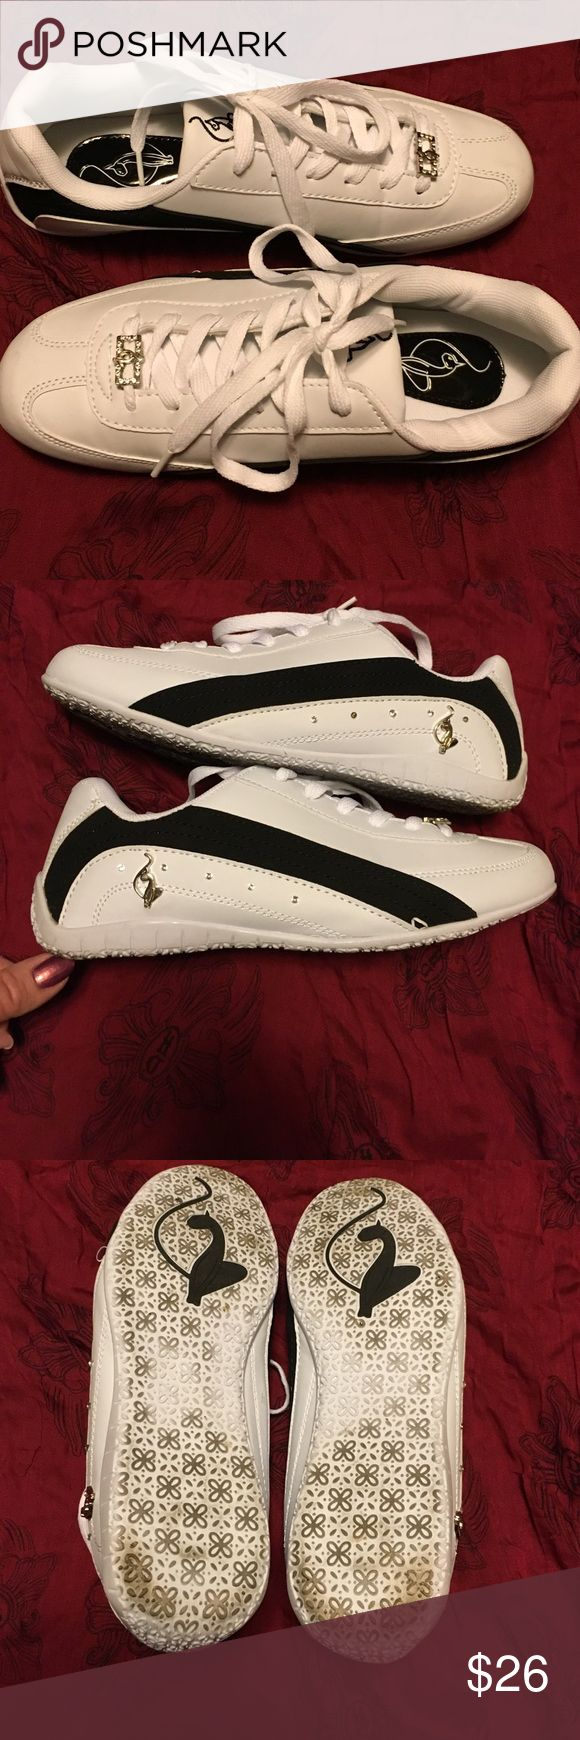 Baby Pfat Sneakers. Size 8. Cute tennis shoes! White with black stripe. Worn a couple times. Nice shape! Note on last pic 2 small crystals missing. Price reflects. Baby Phat. Size 8. Baby Phat Shoes Sneakers